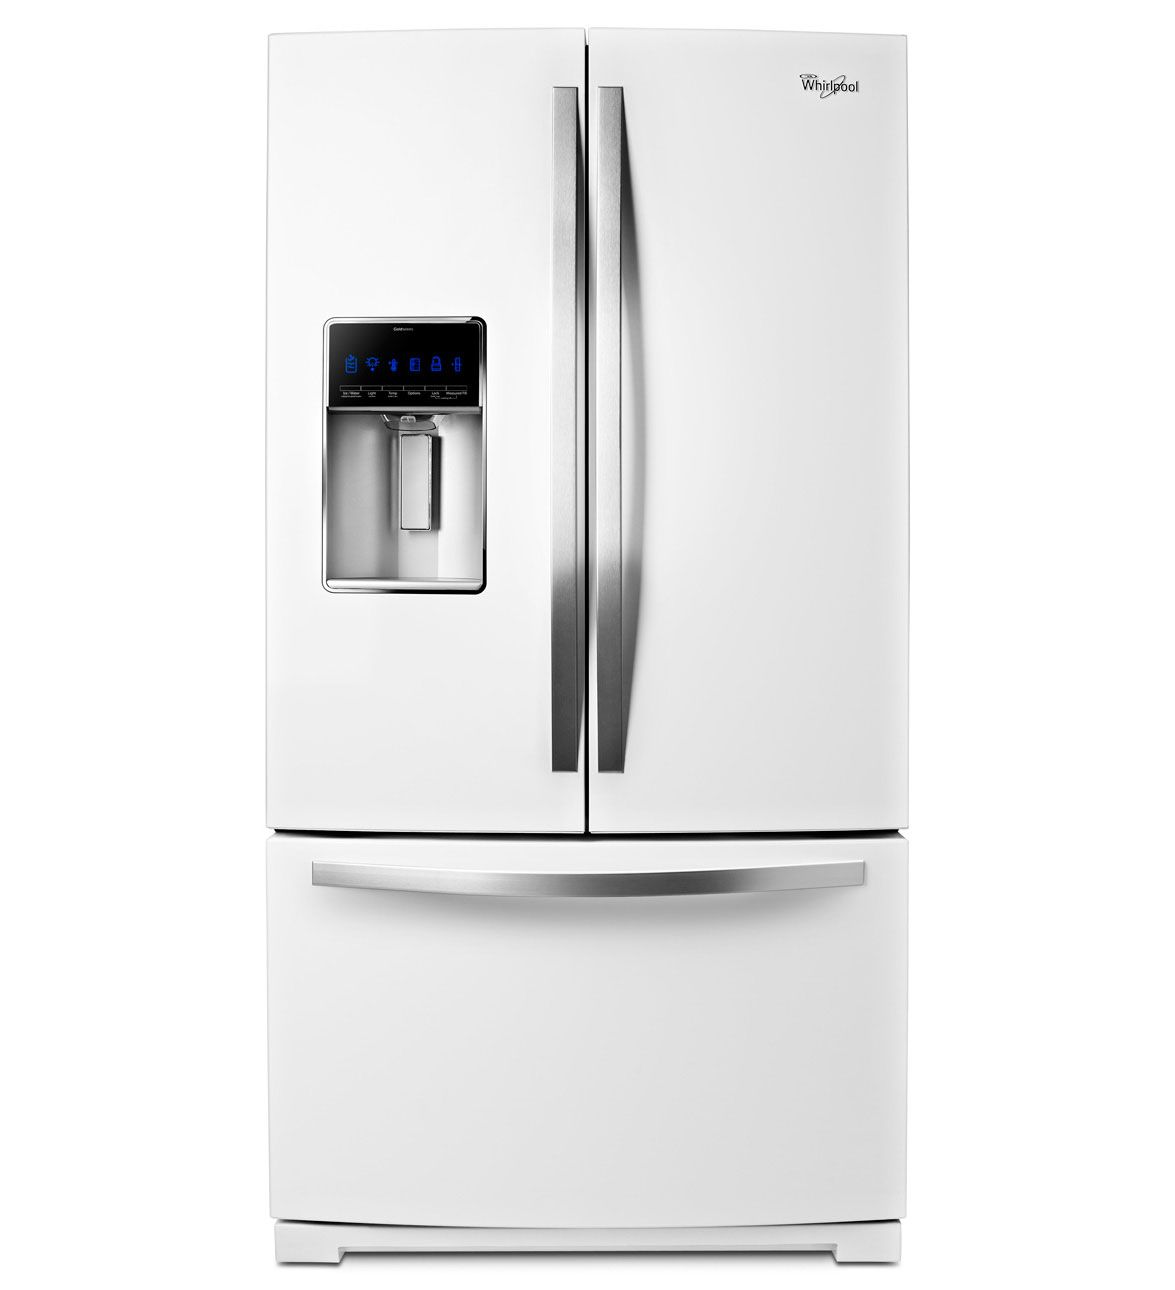 Whirlpool Gold 29 Cu Ft French Door Refrigerator With The Most Fresh Food Capacity Available21 French Door Refrigerator White Refrigerator French Doors